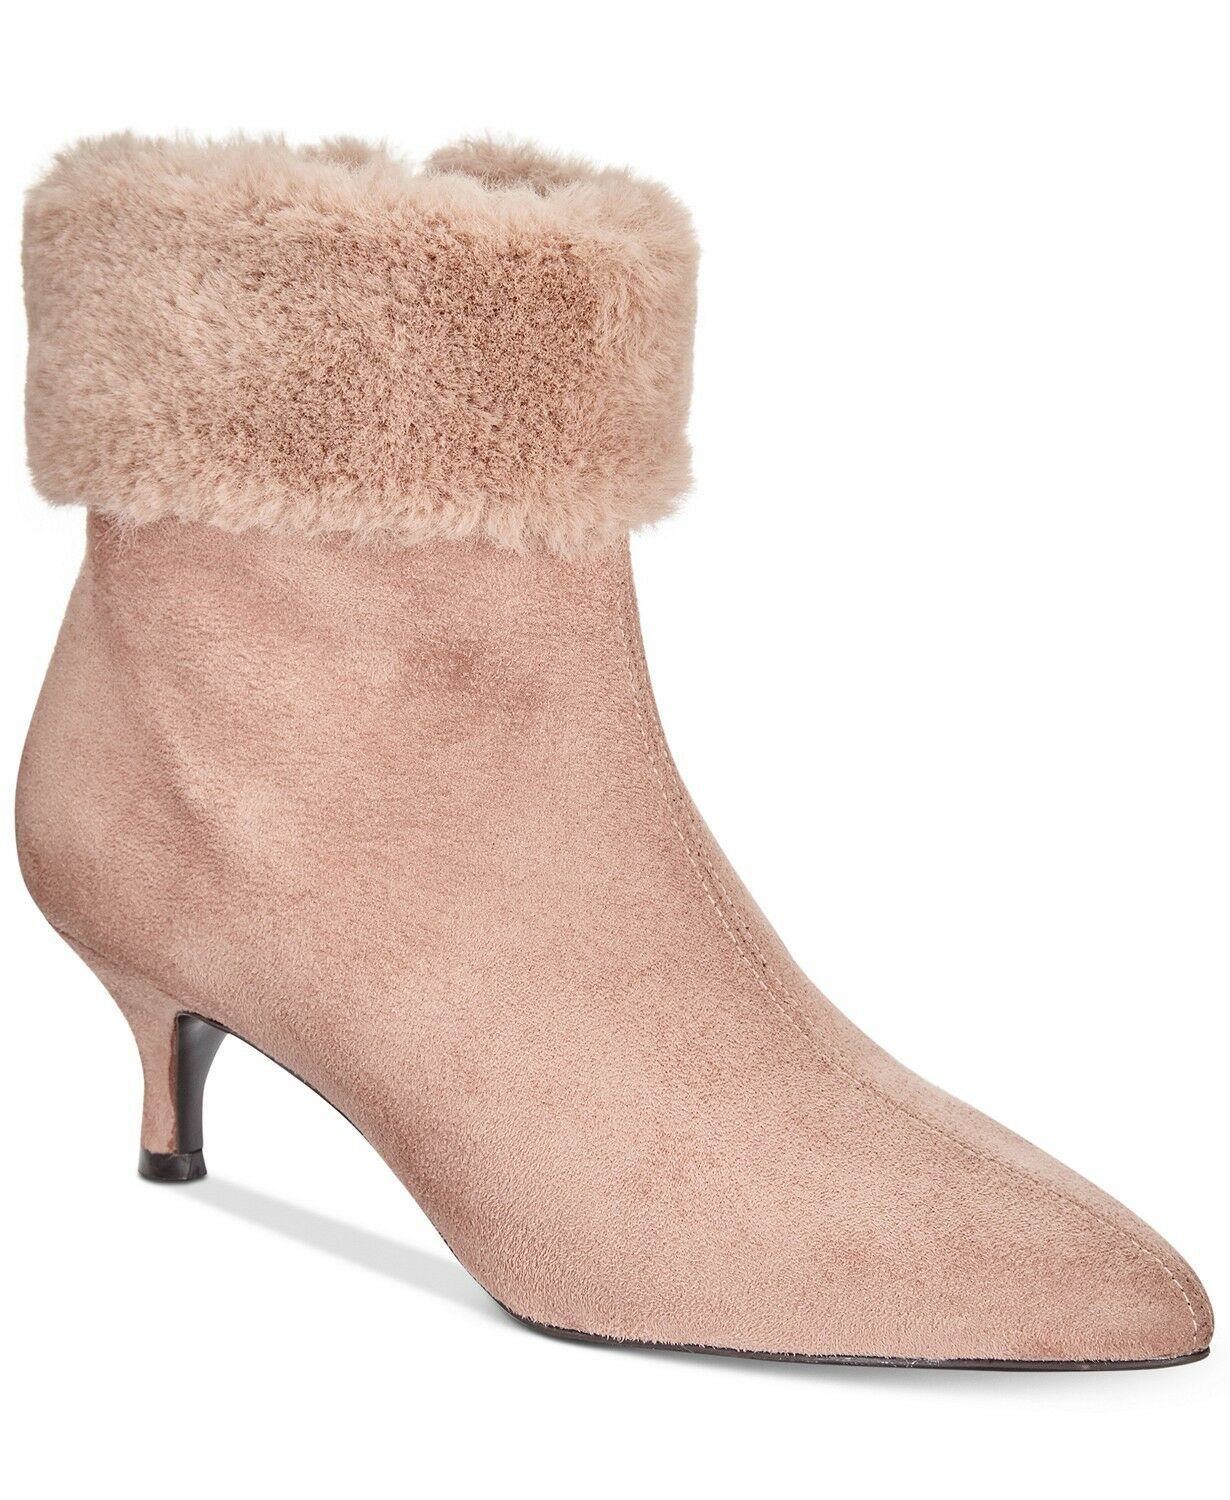 Impo Esra Faux-Fur Cuff Pointed-Toe Booties SUEDE Stretch shoes 7 M -BROWN-